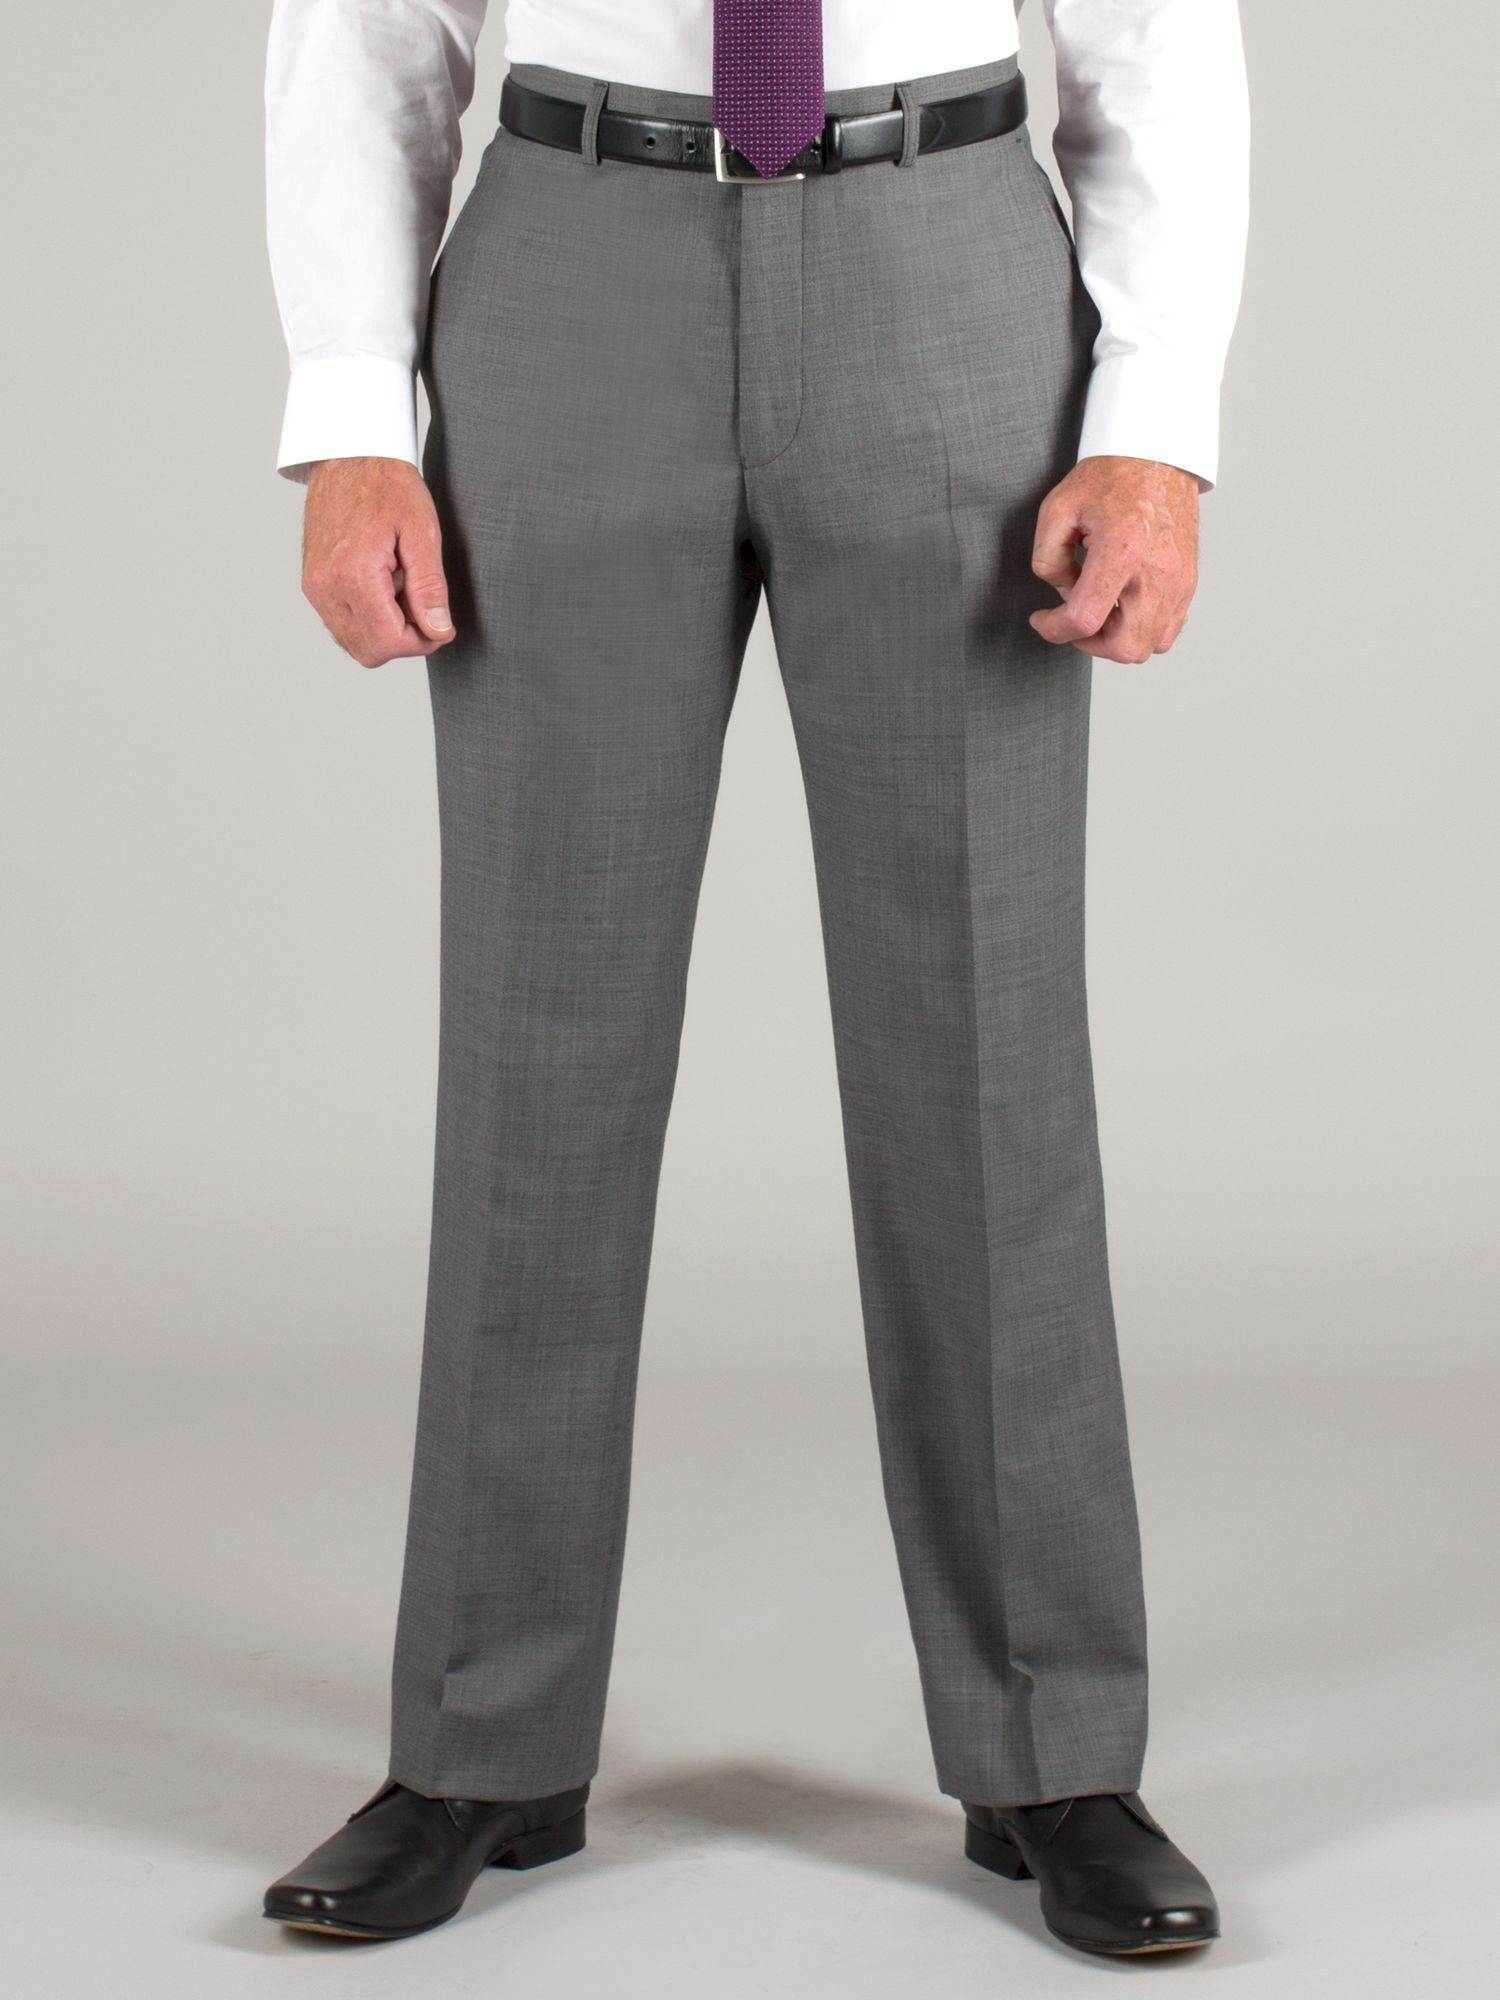 Grey sharkskin trouser